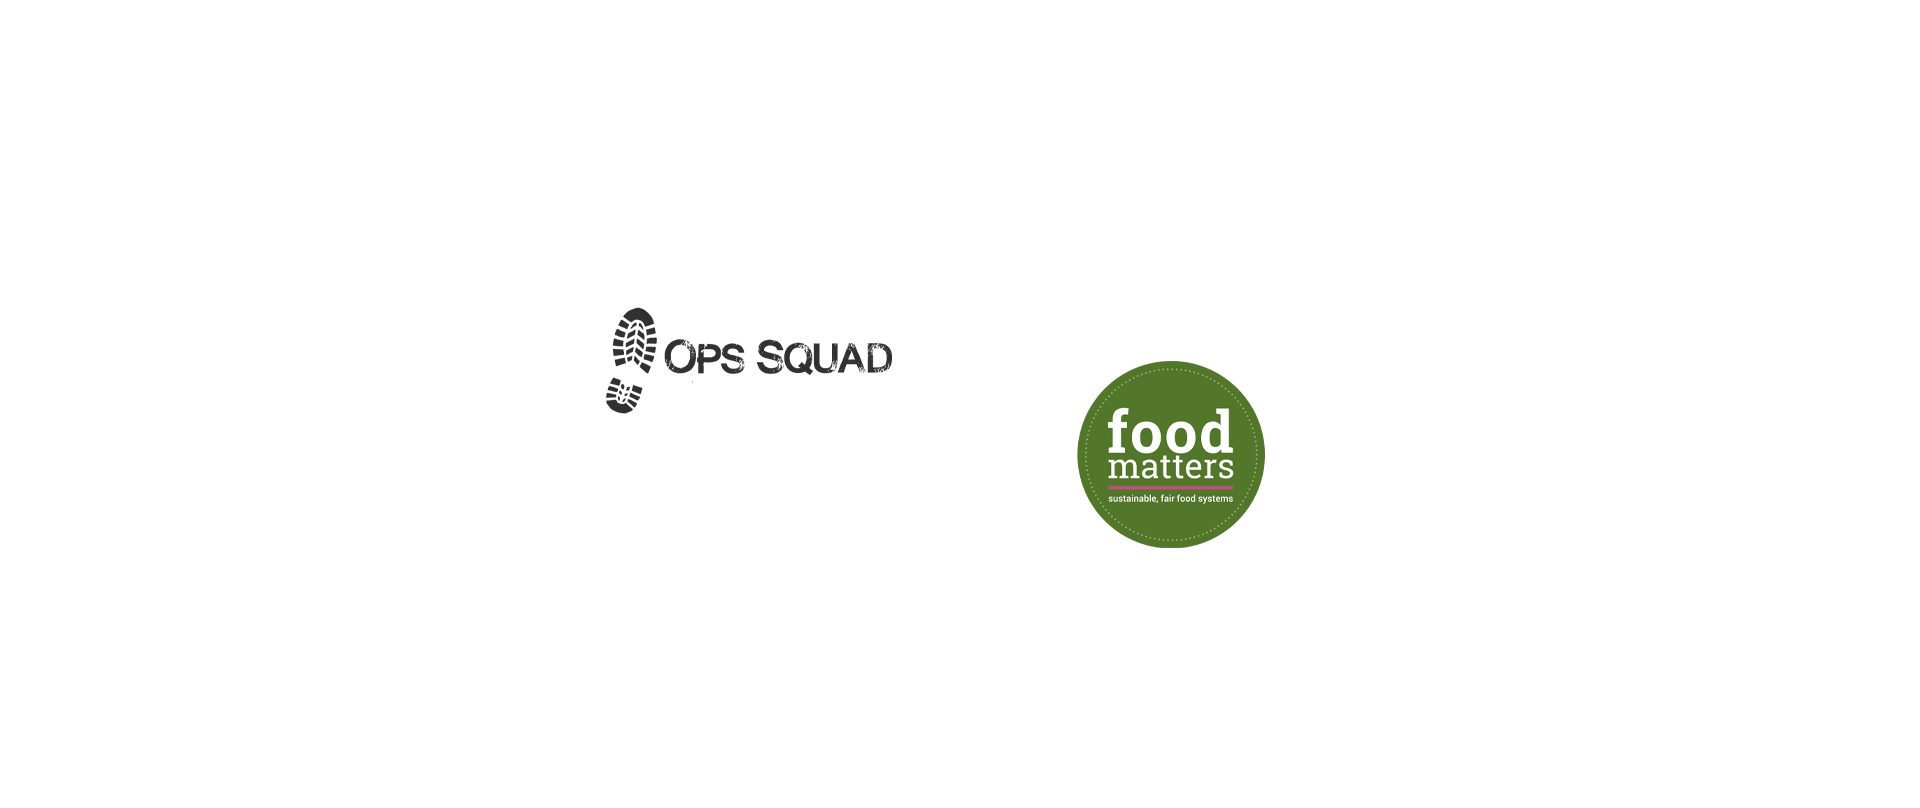 Food Matters Live and Ops Squad Testimonials